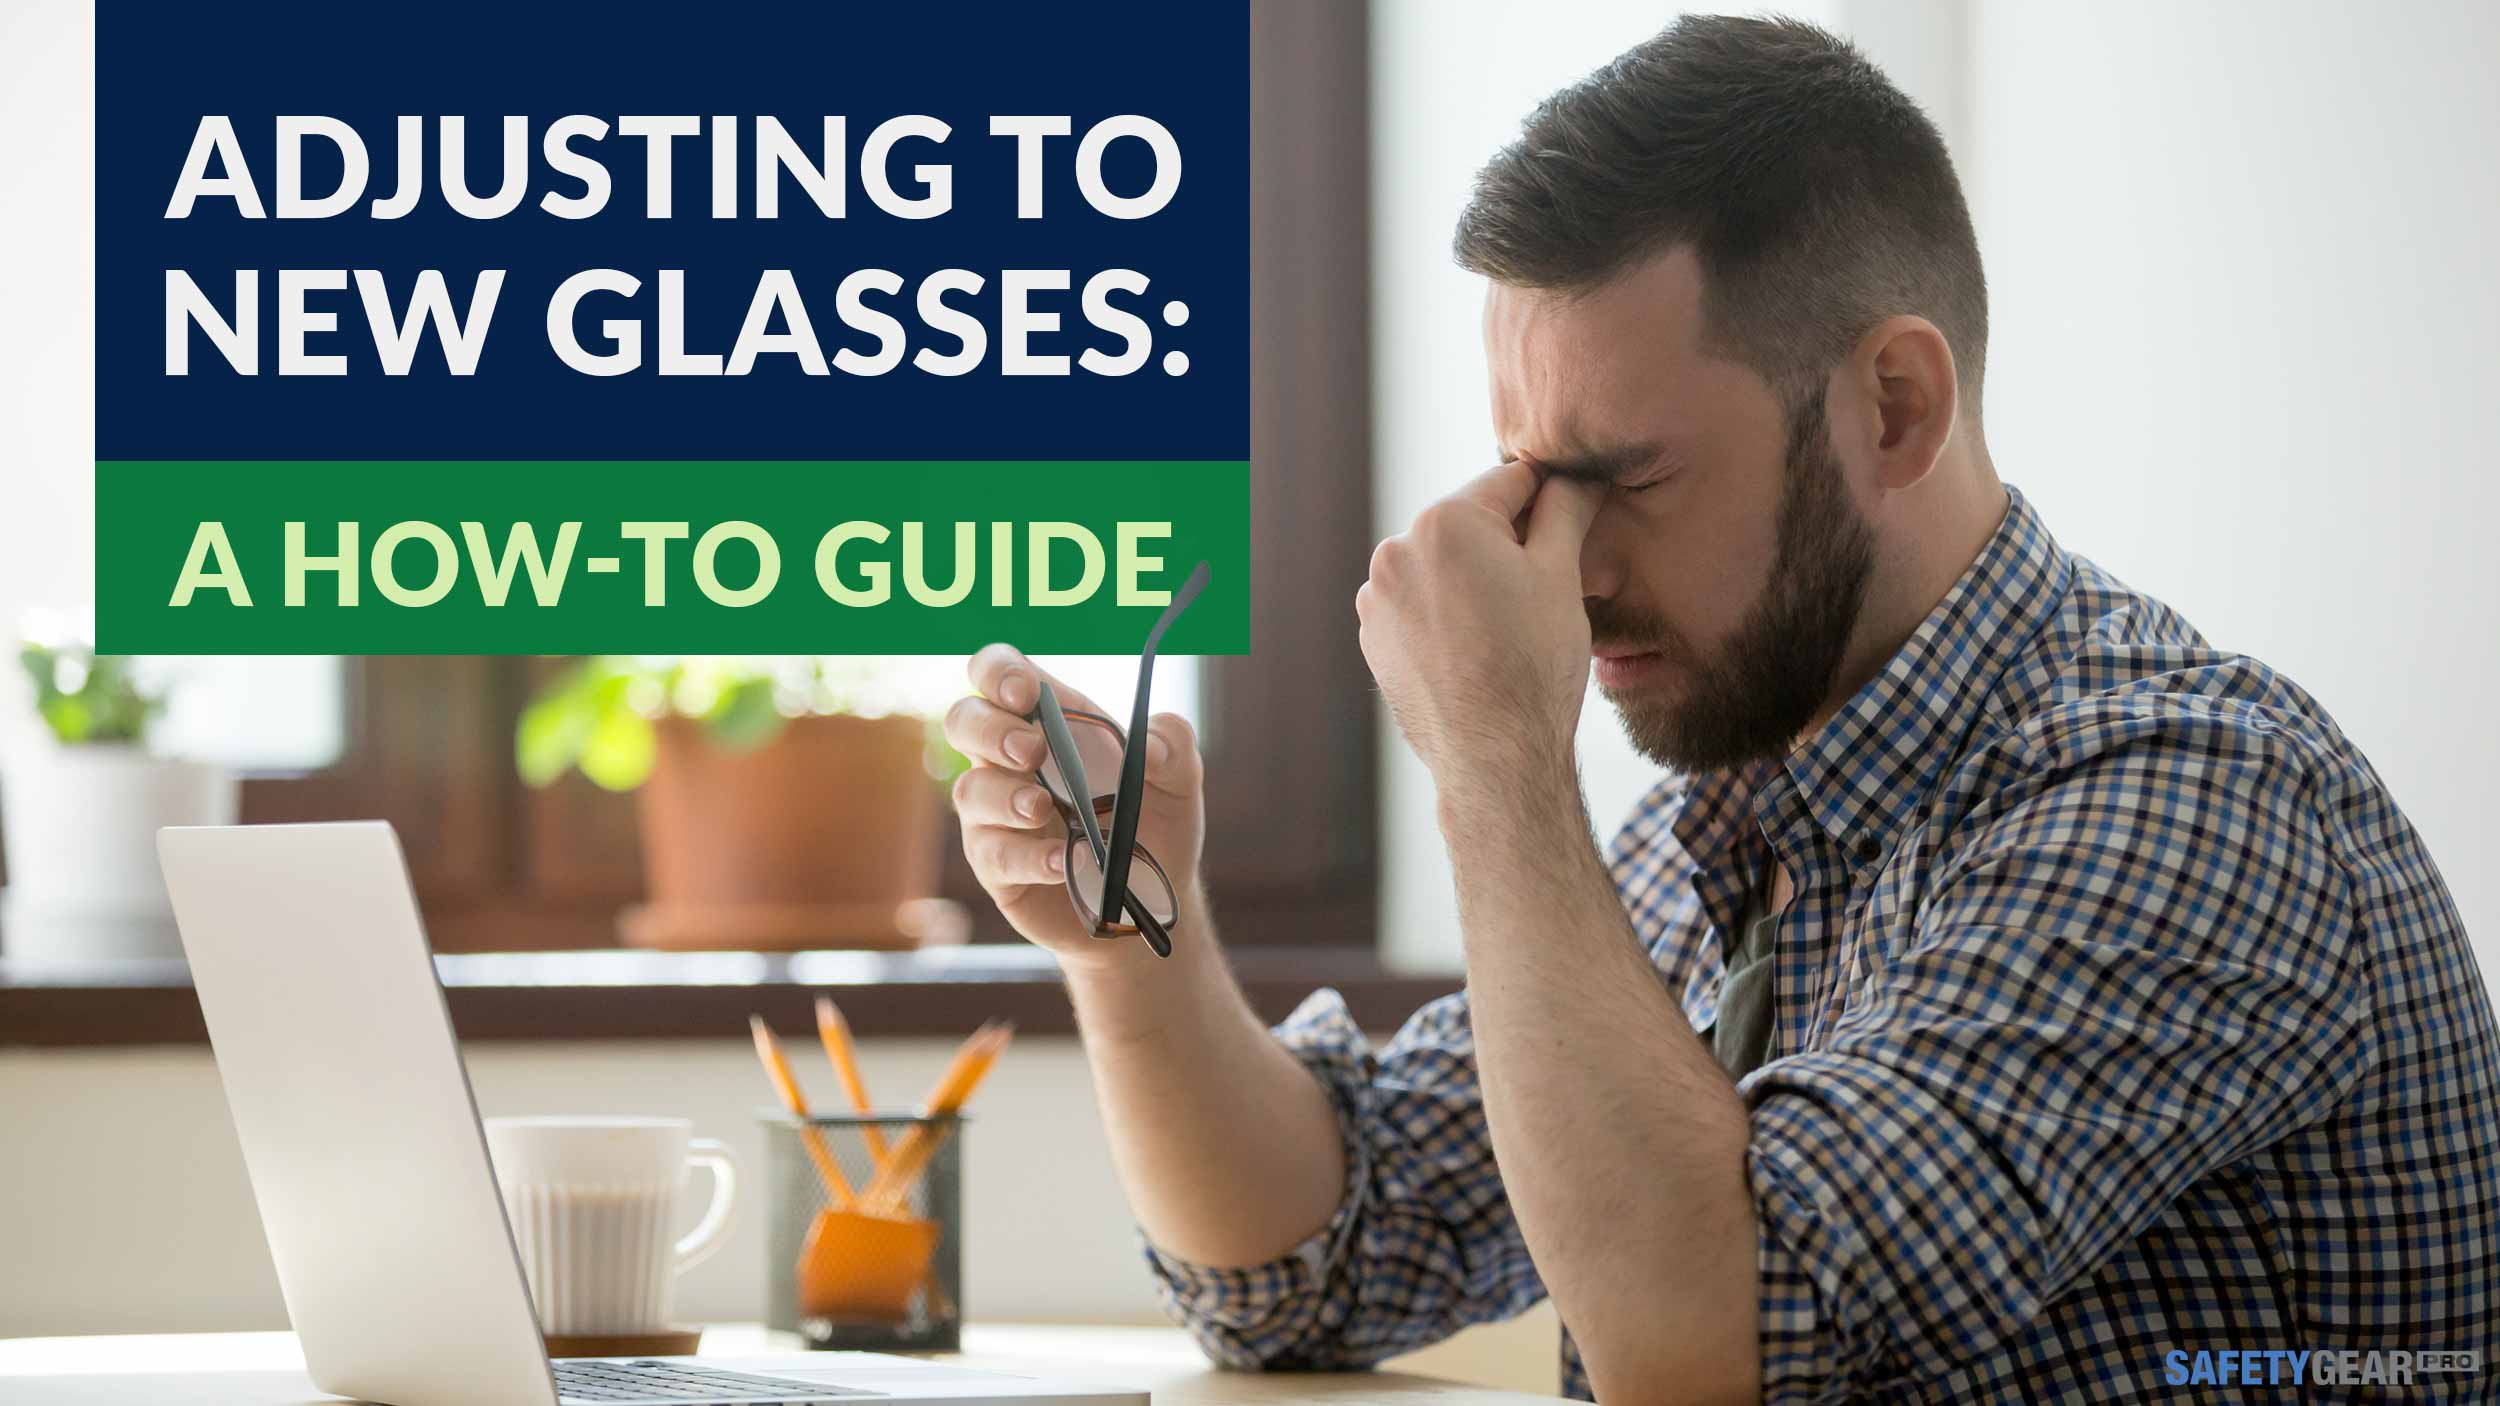 Adjusting to New Glasses A How-to Guide